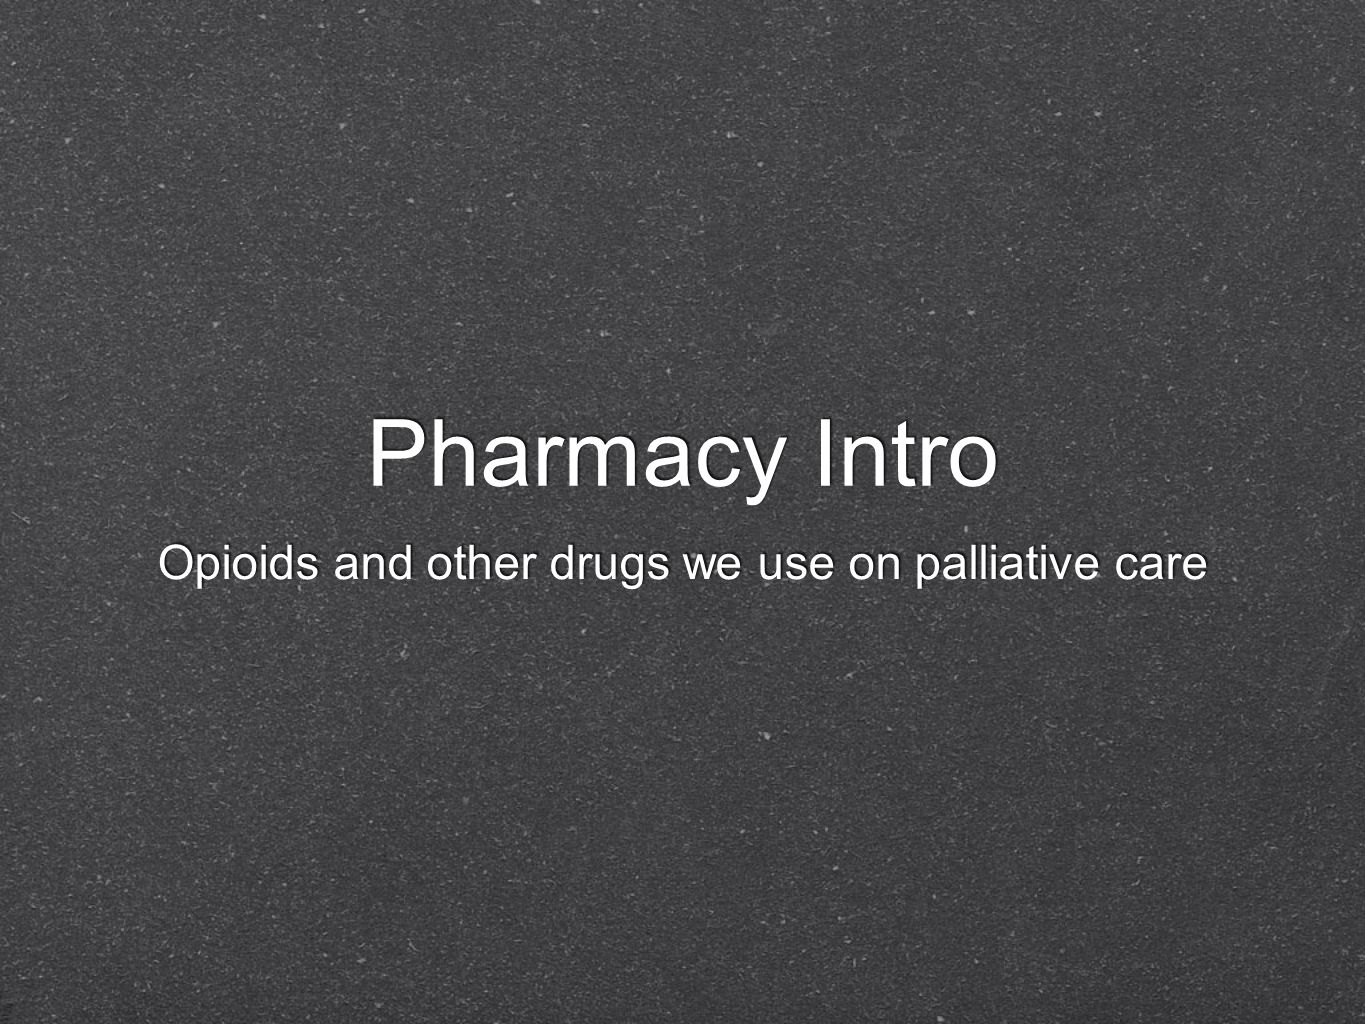 Opioids and other drugs we use on palliative care